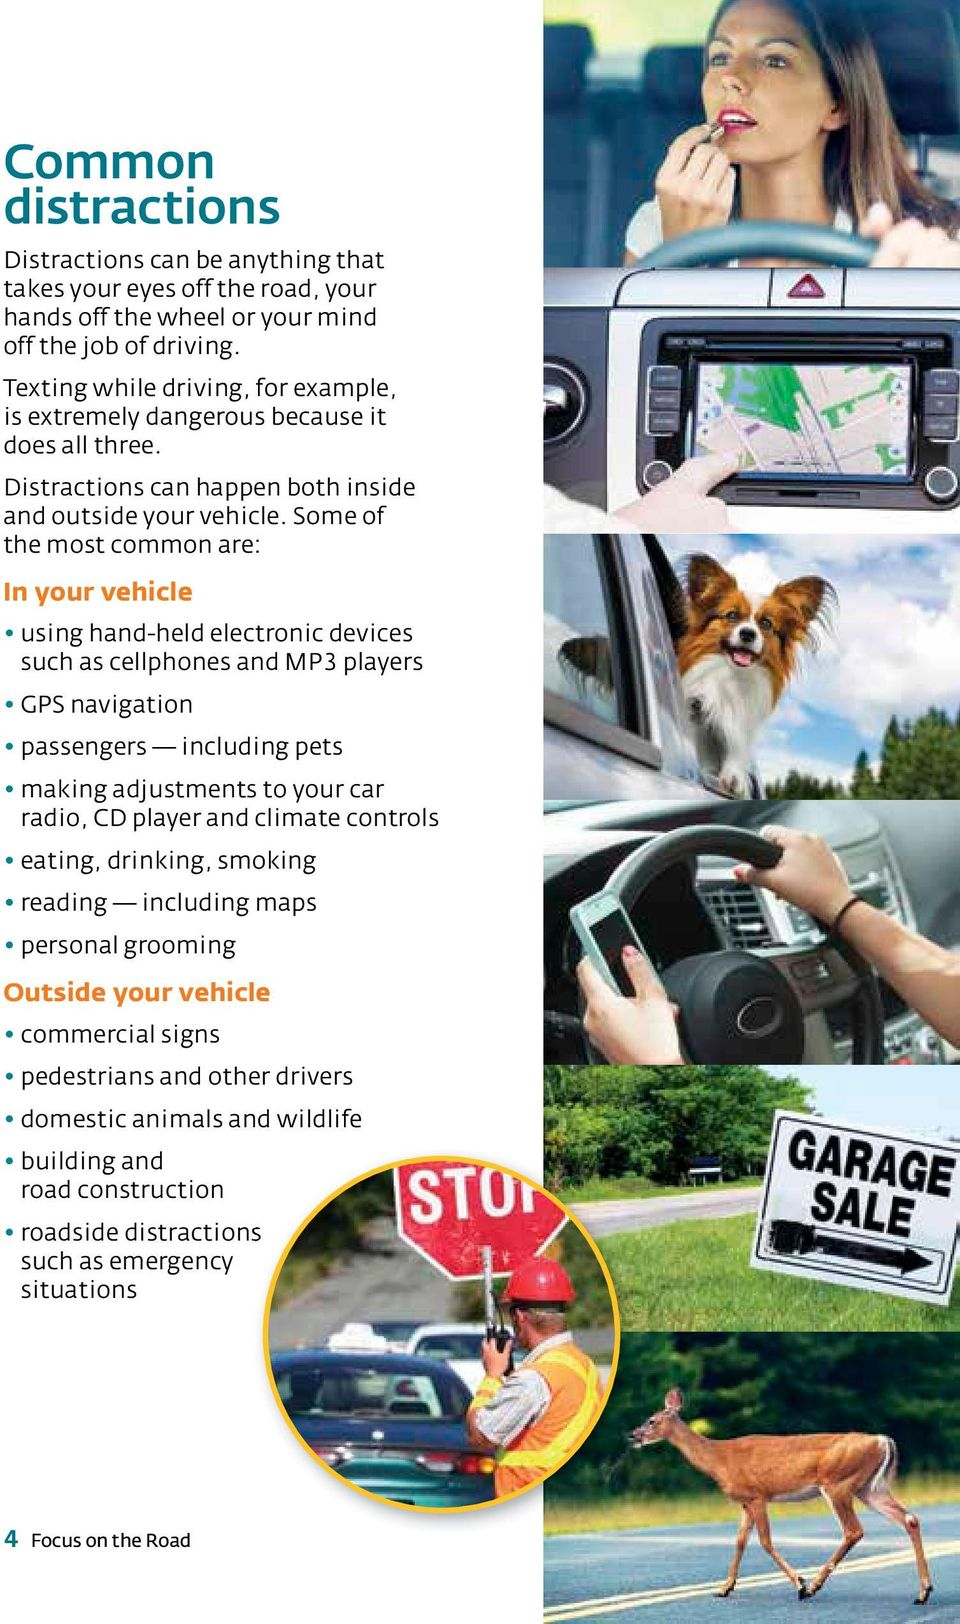 Some of the most common are: In your vehicle using hand-held electronic devices such as cellphones and MP3 players GPS navigation passengers including pets making adjustments to your car radio, CD